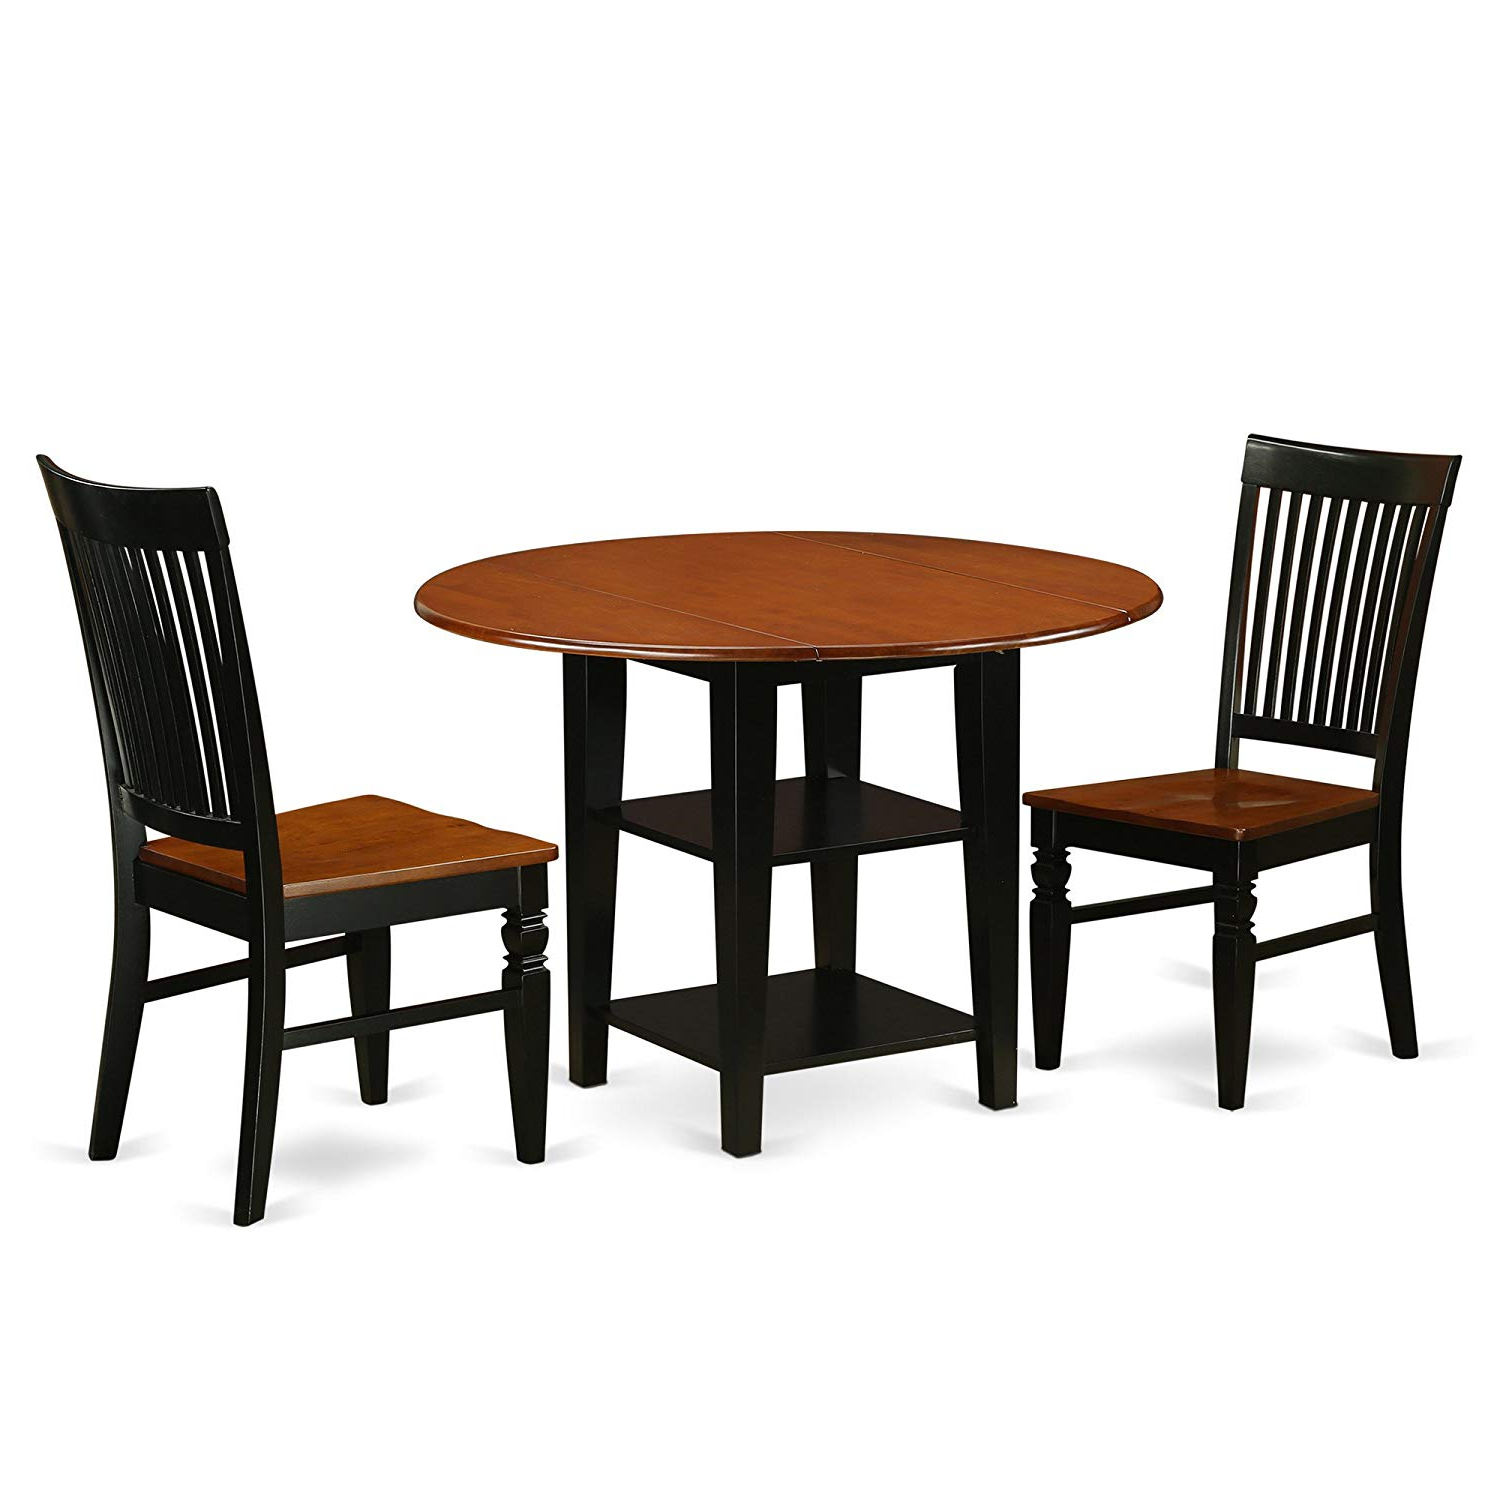 Medium Elegant Dining Tables Throughout Most Recent East West Furniture Suwe3 Bch W Dining Set Medium Black & Cherry (Gallery 14 of 30)